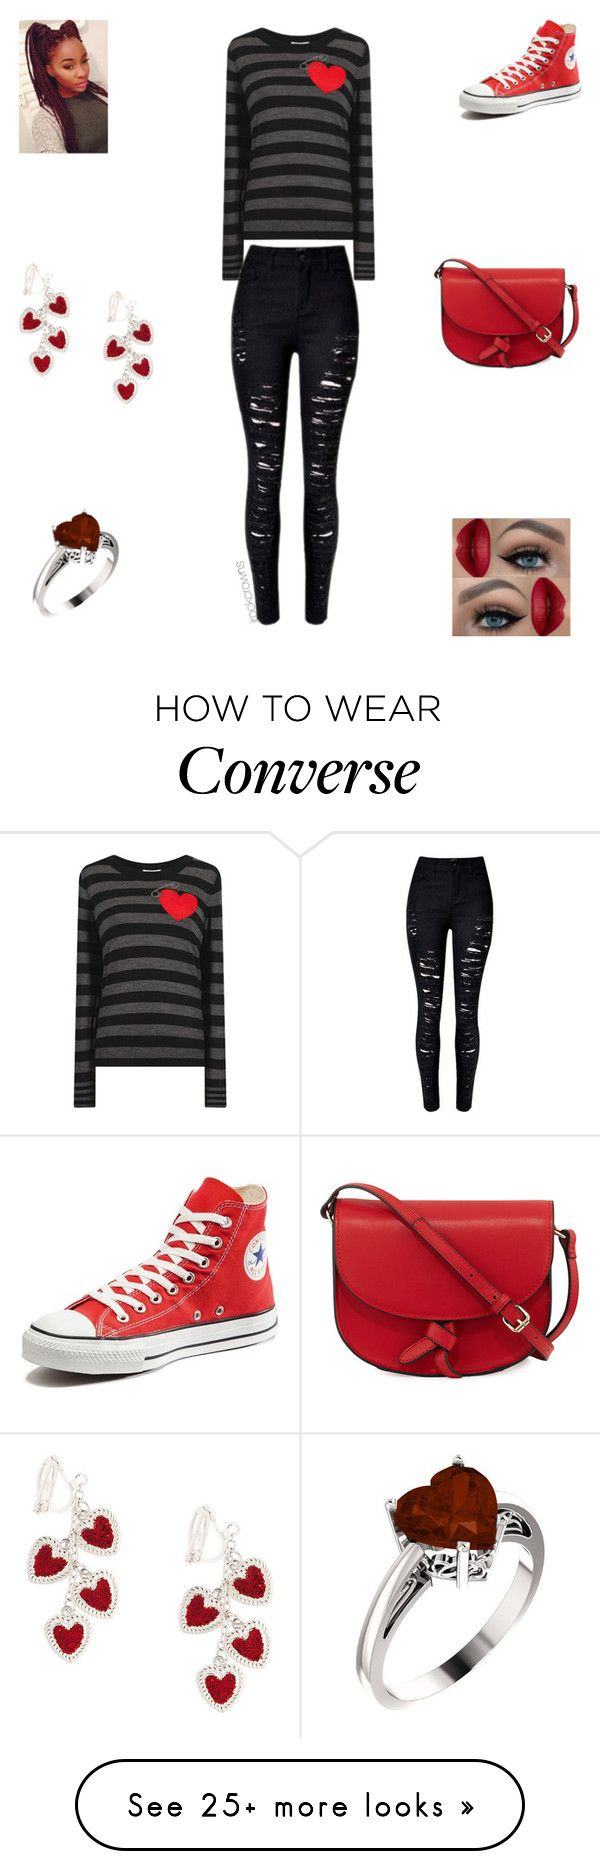 """Hearts"" by irockcrowns on Polyvore featuring Sonia by Sonia Rykiel, Converse and KC Jagger"